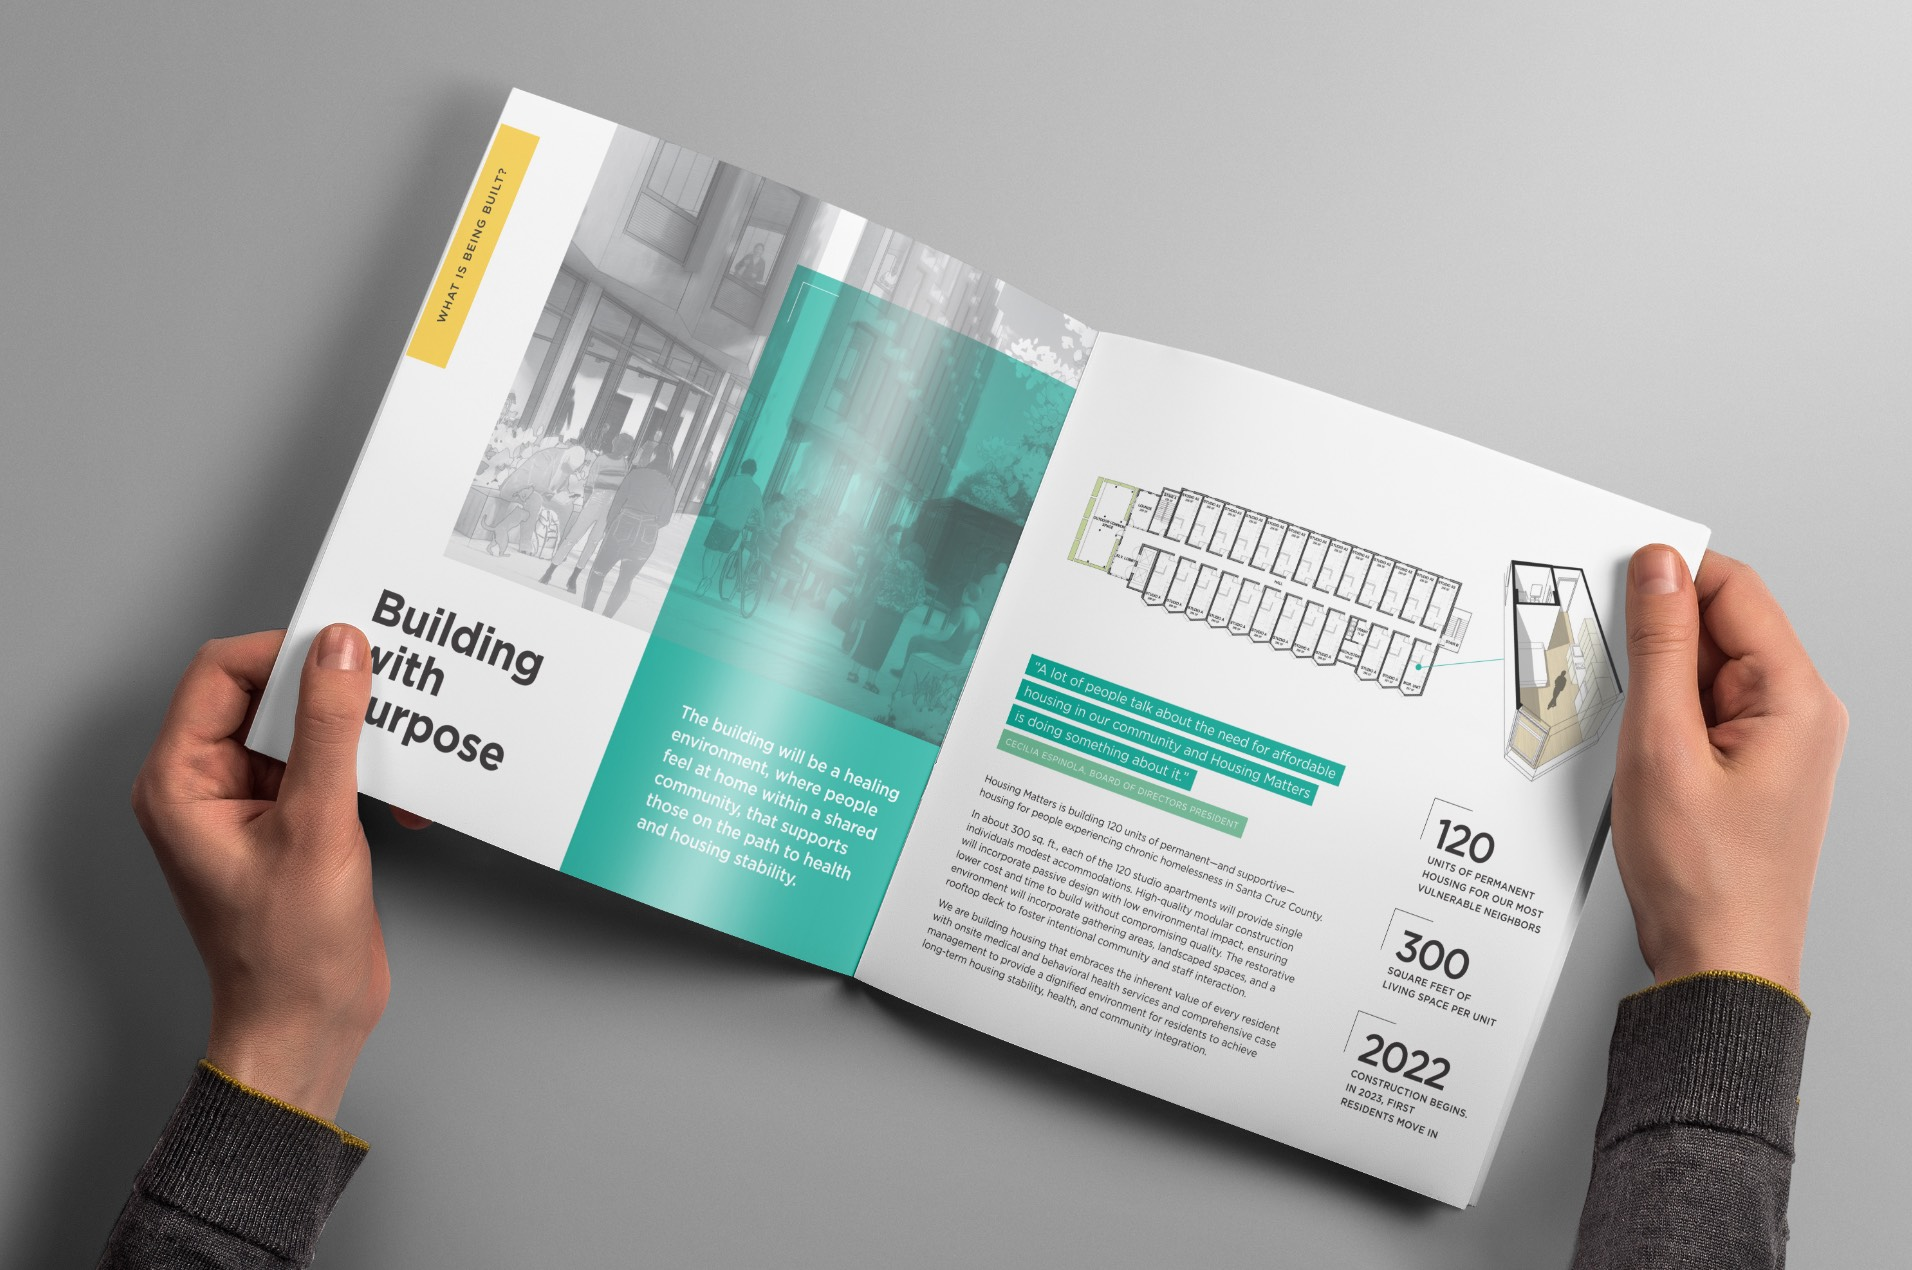 Housing Matters Building with Purpose Brochure